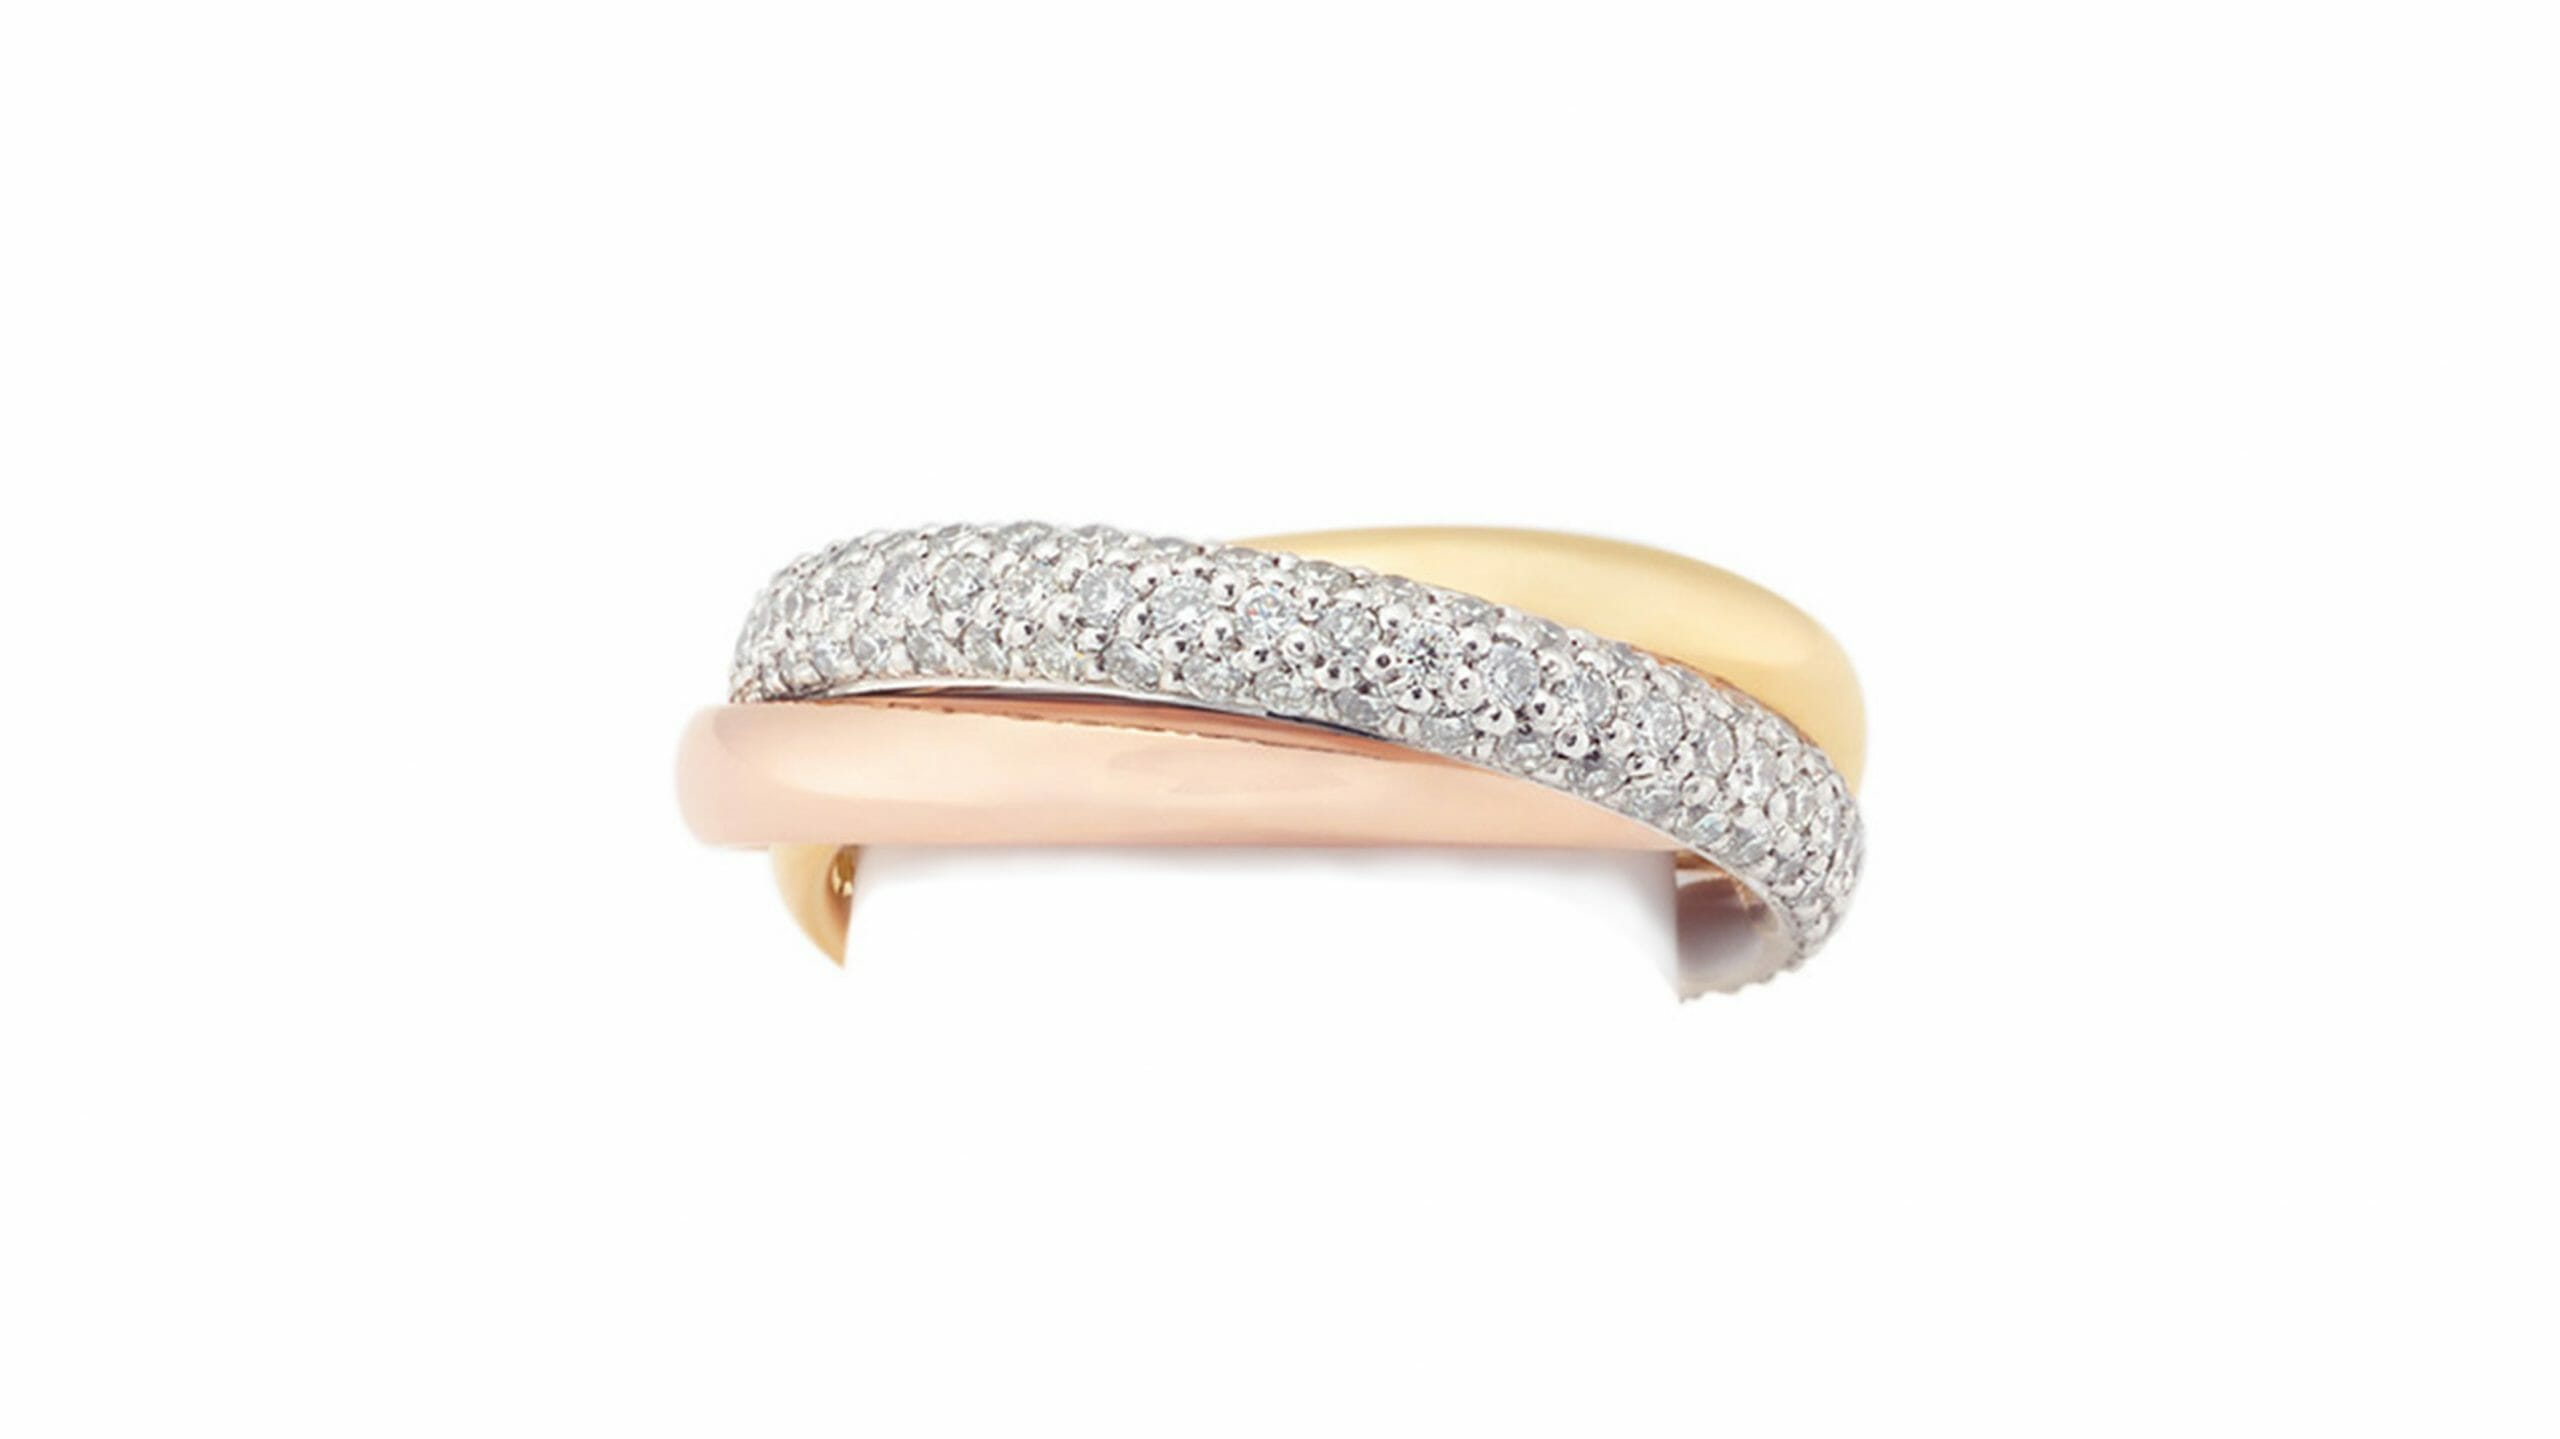 tri-colour pavé interlocking band | Pave-set diamonds in yellow, rose and white gold band.